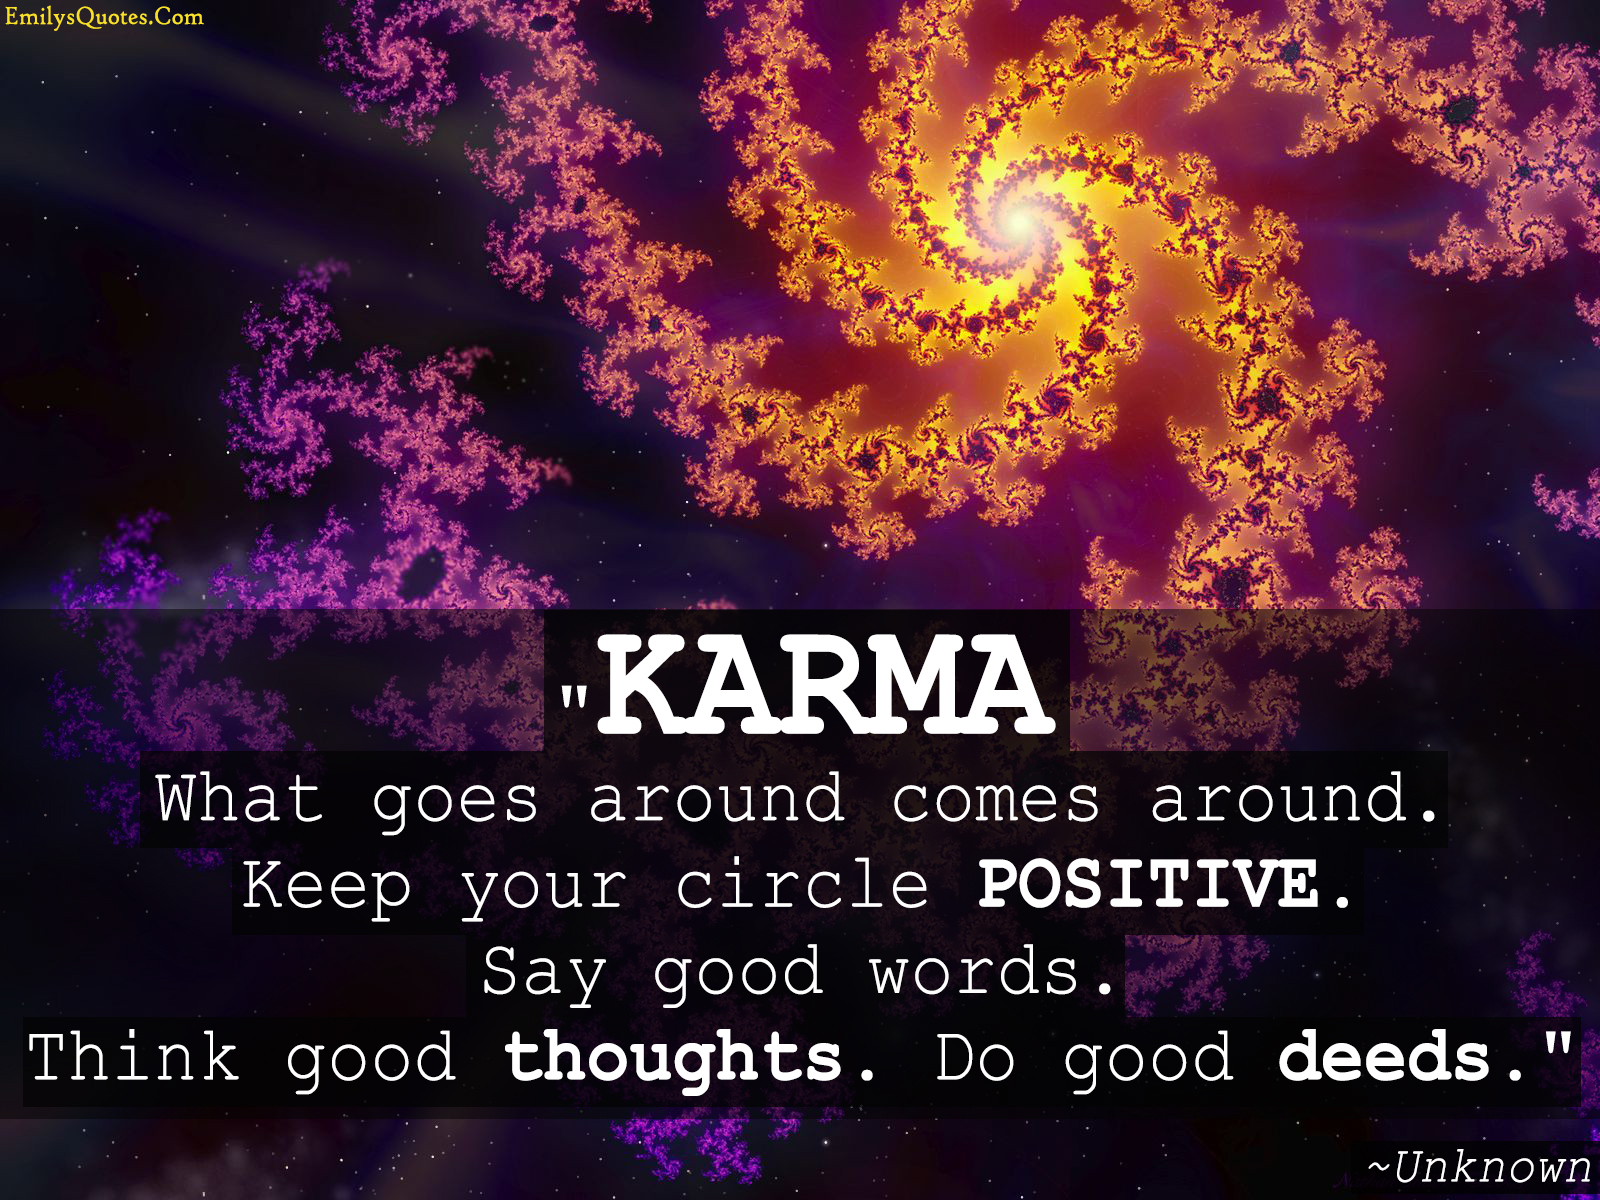 EmilysQuotes.Com - karma, positive, being a good person, communication, deeds, unknown